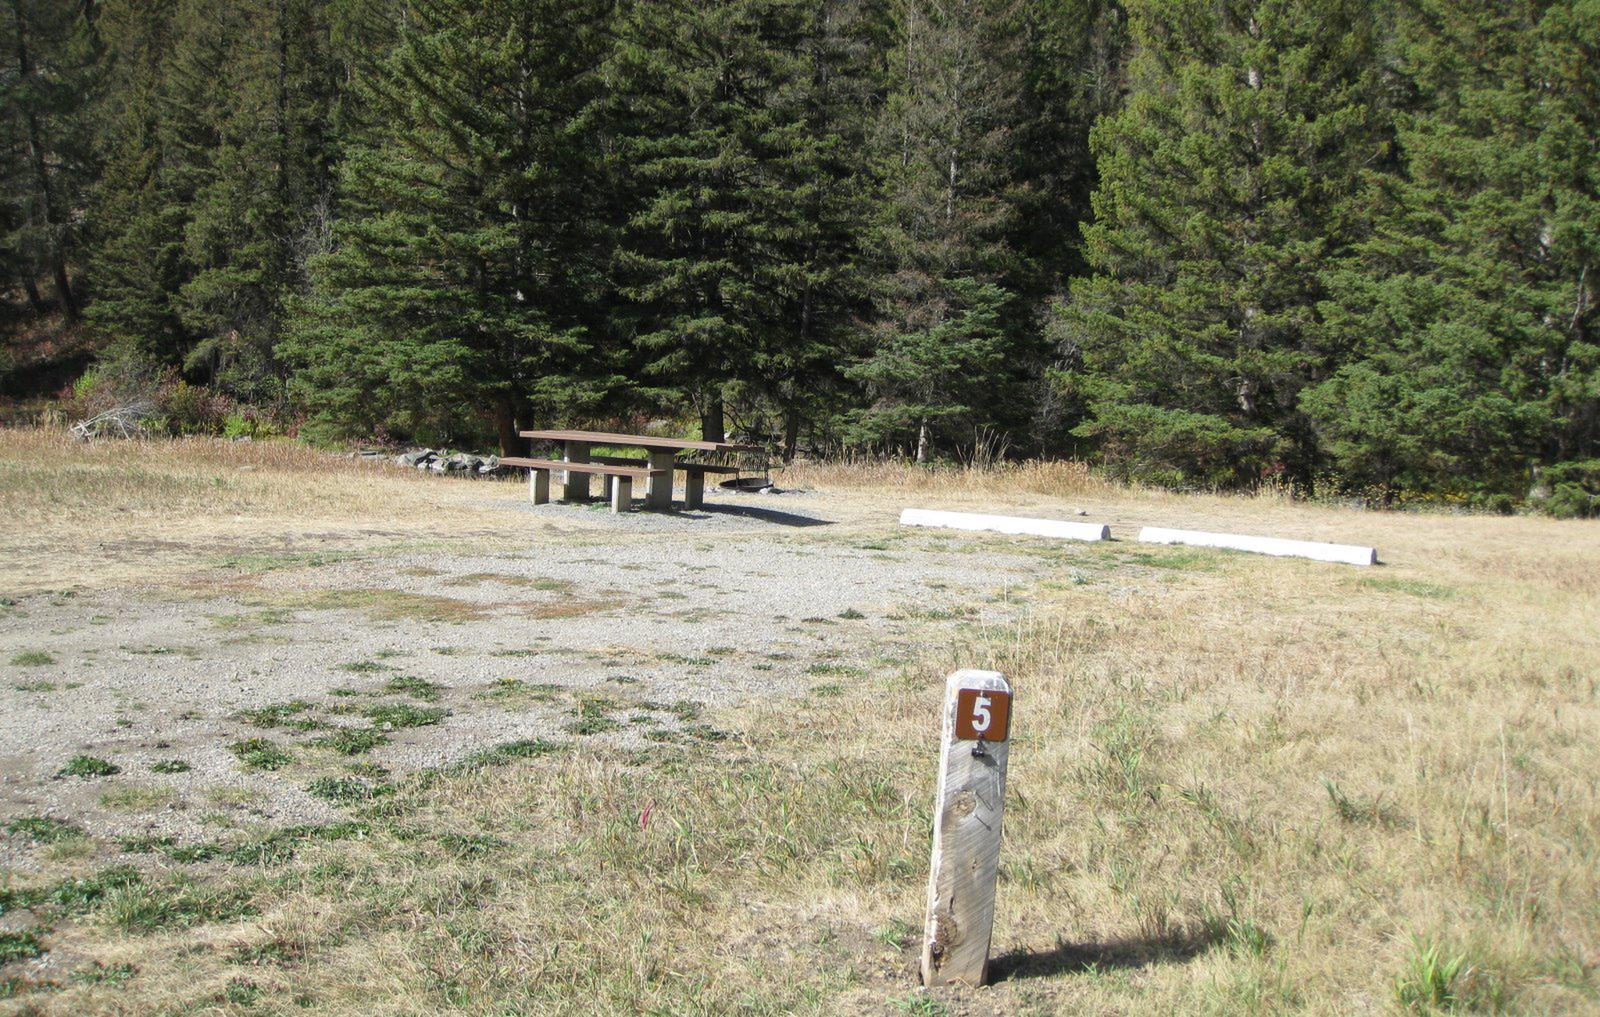 Site 5 campsite - pine trees along river, picnic table & fire ringSite 5